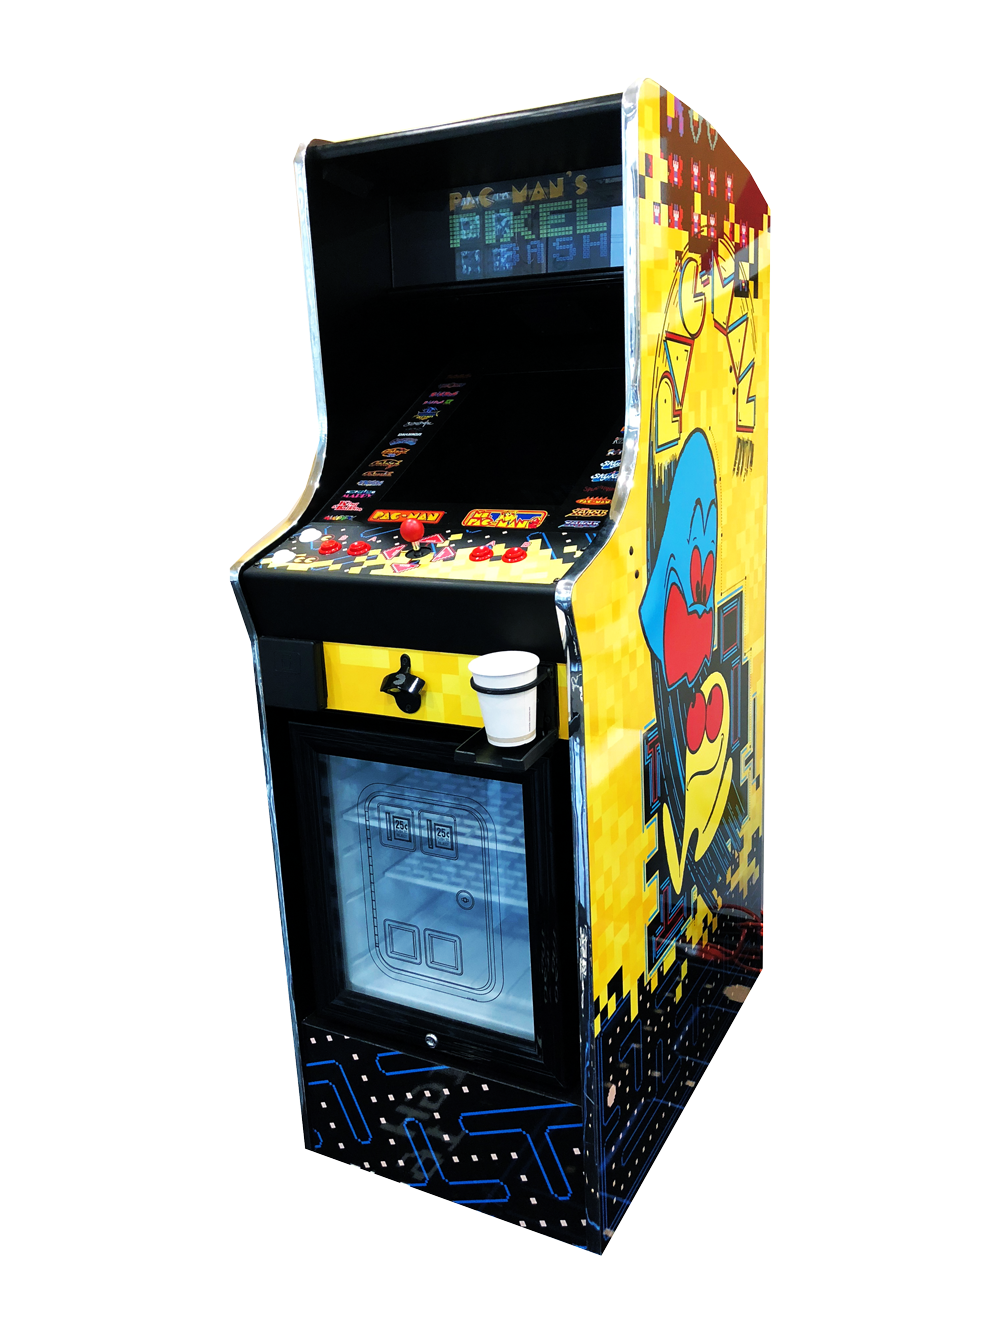 Pin On Arcade Games